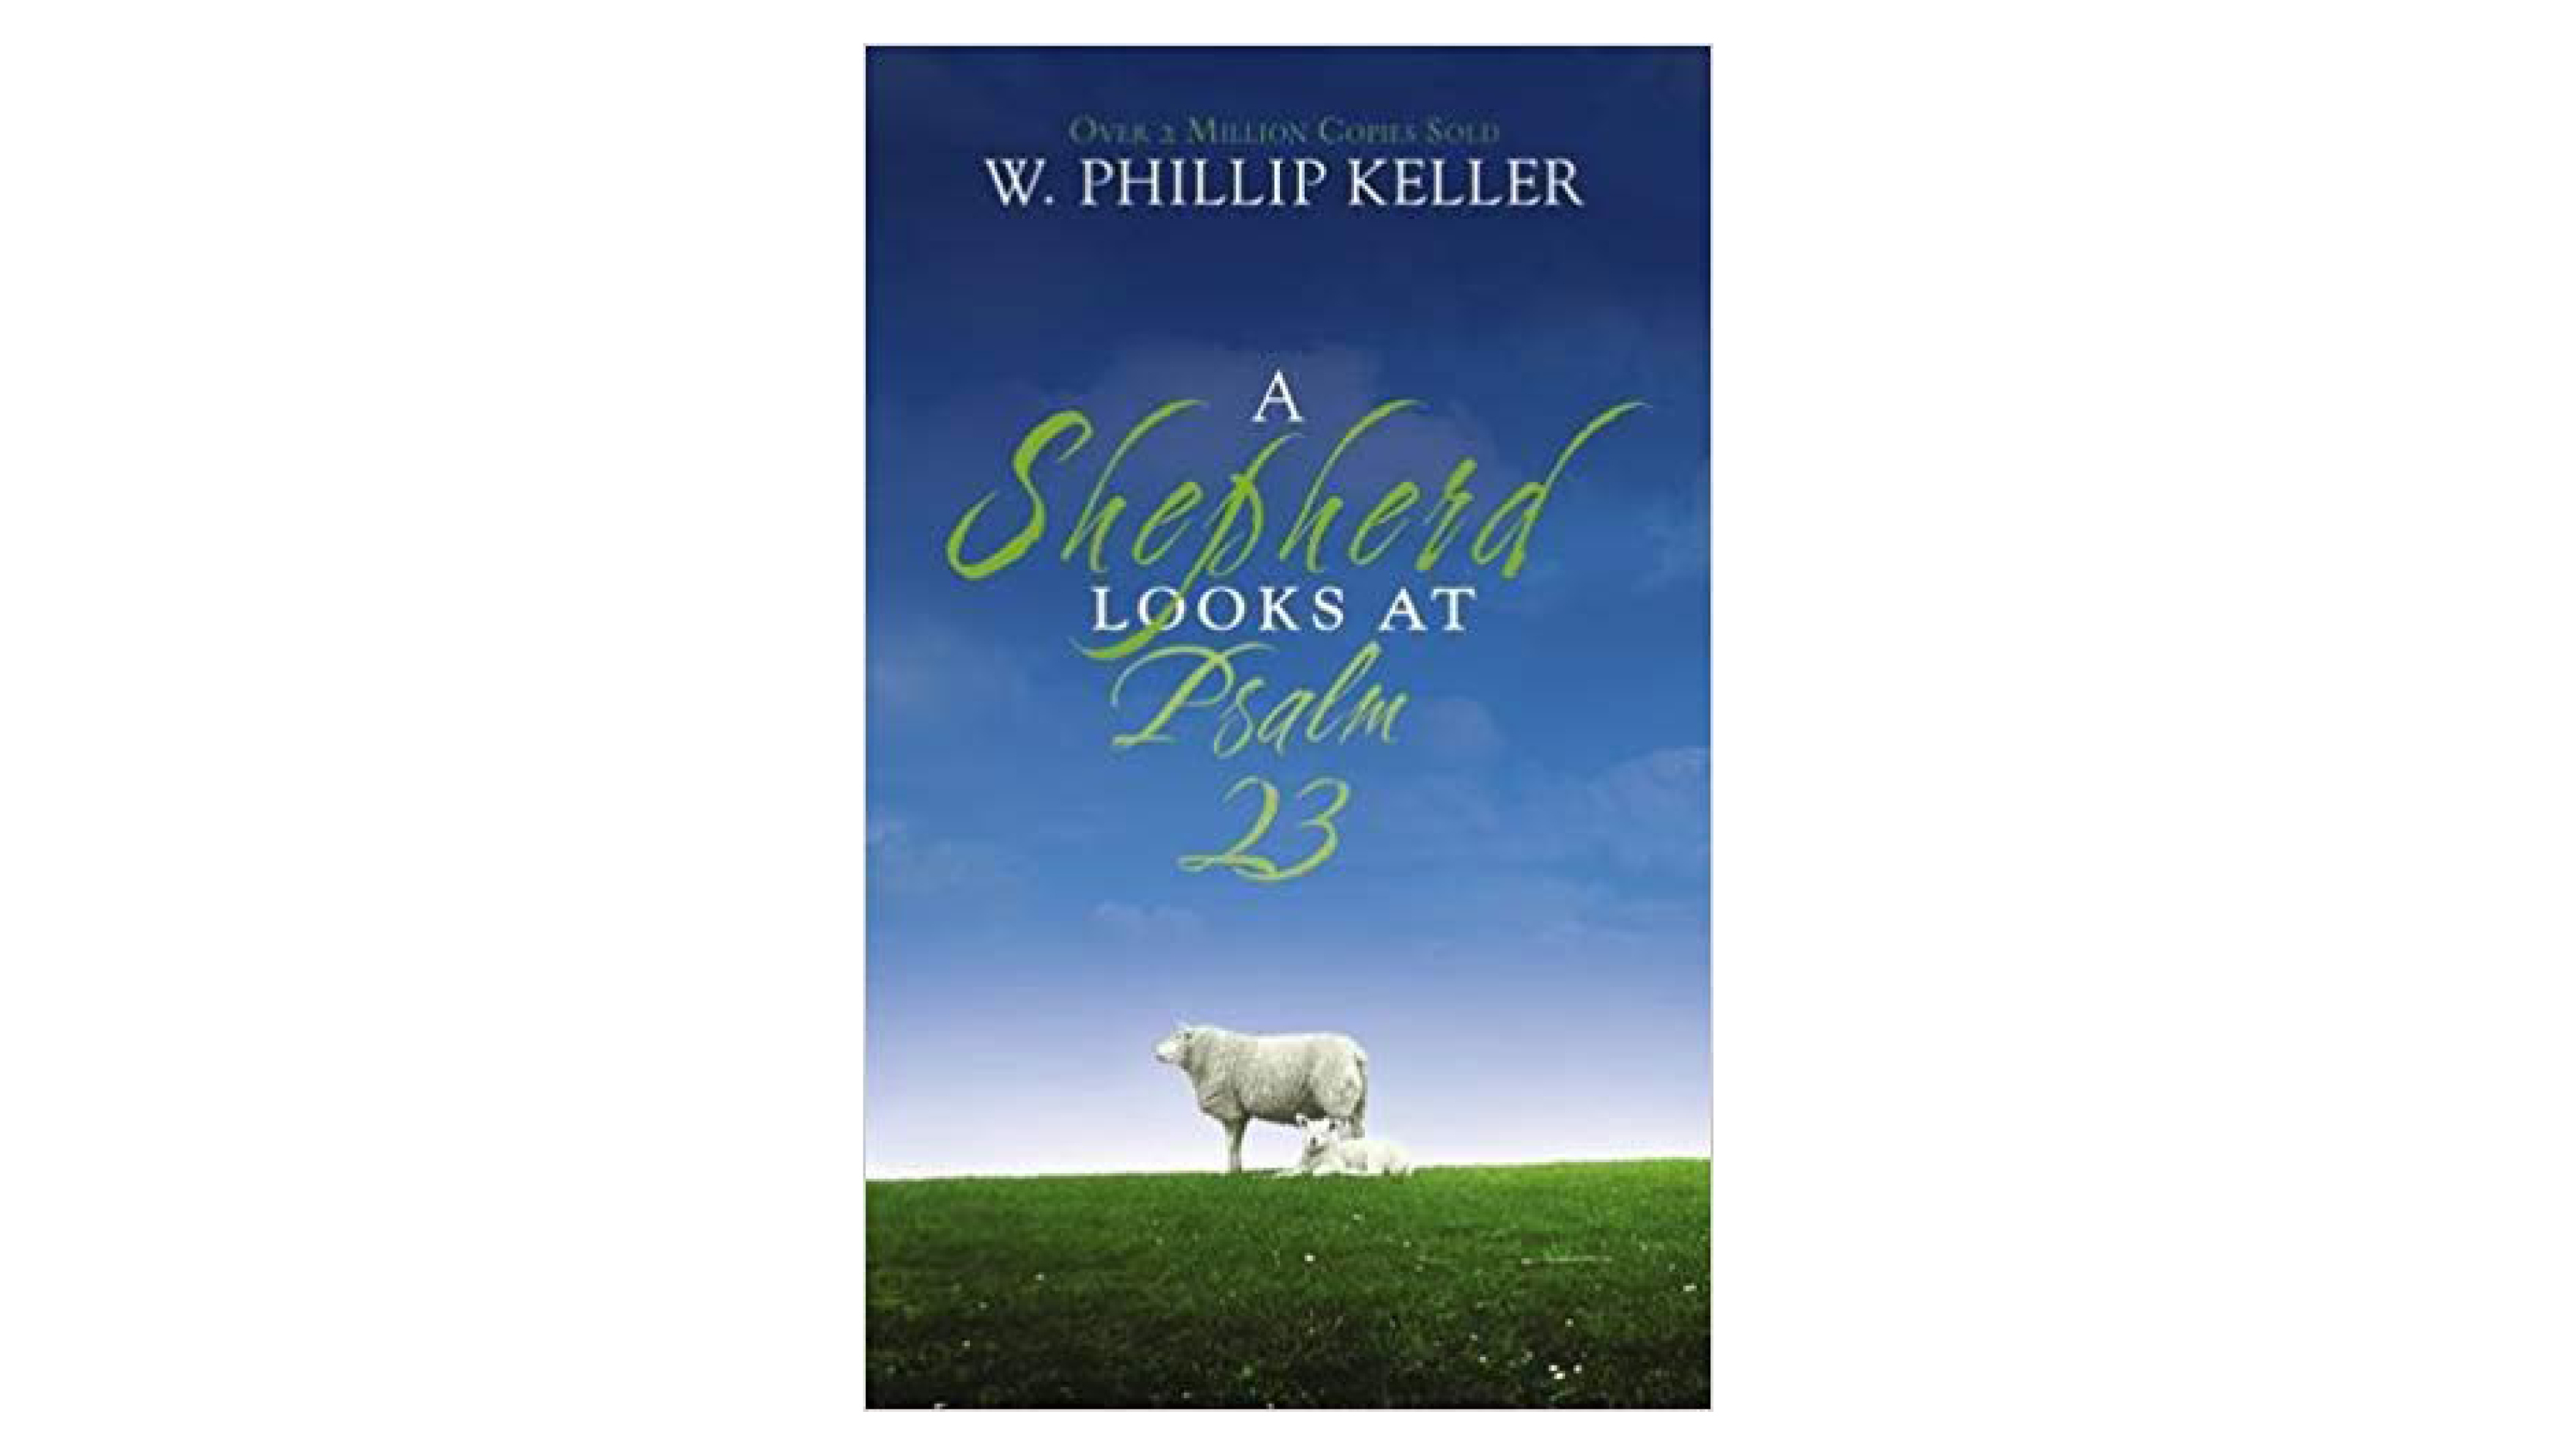 A Shepherd's Look at Psalm 23